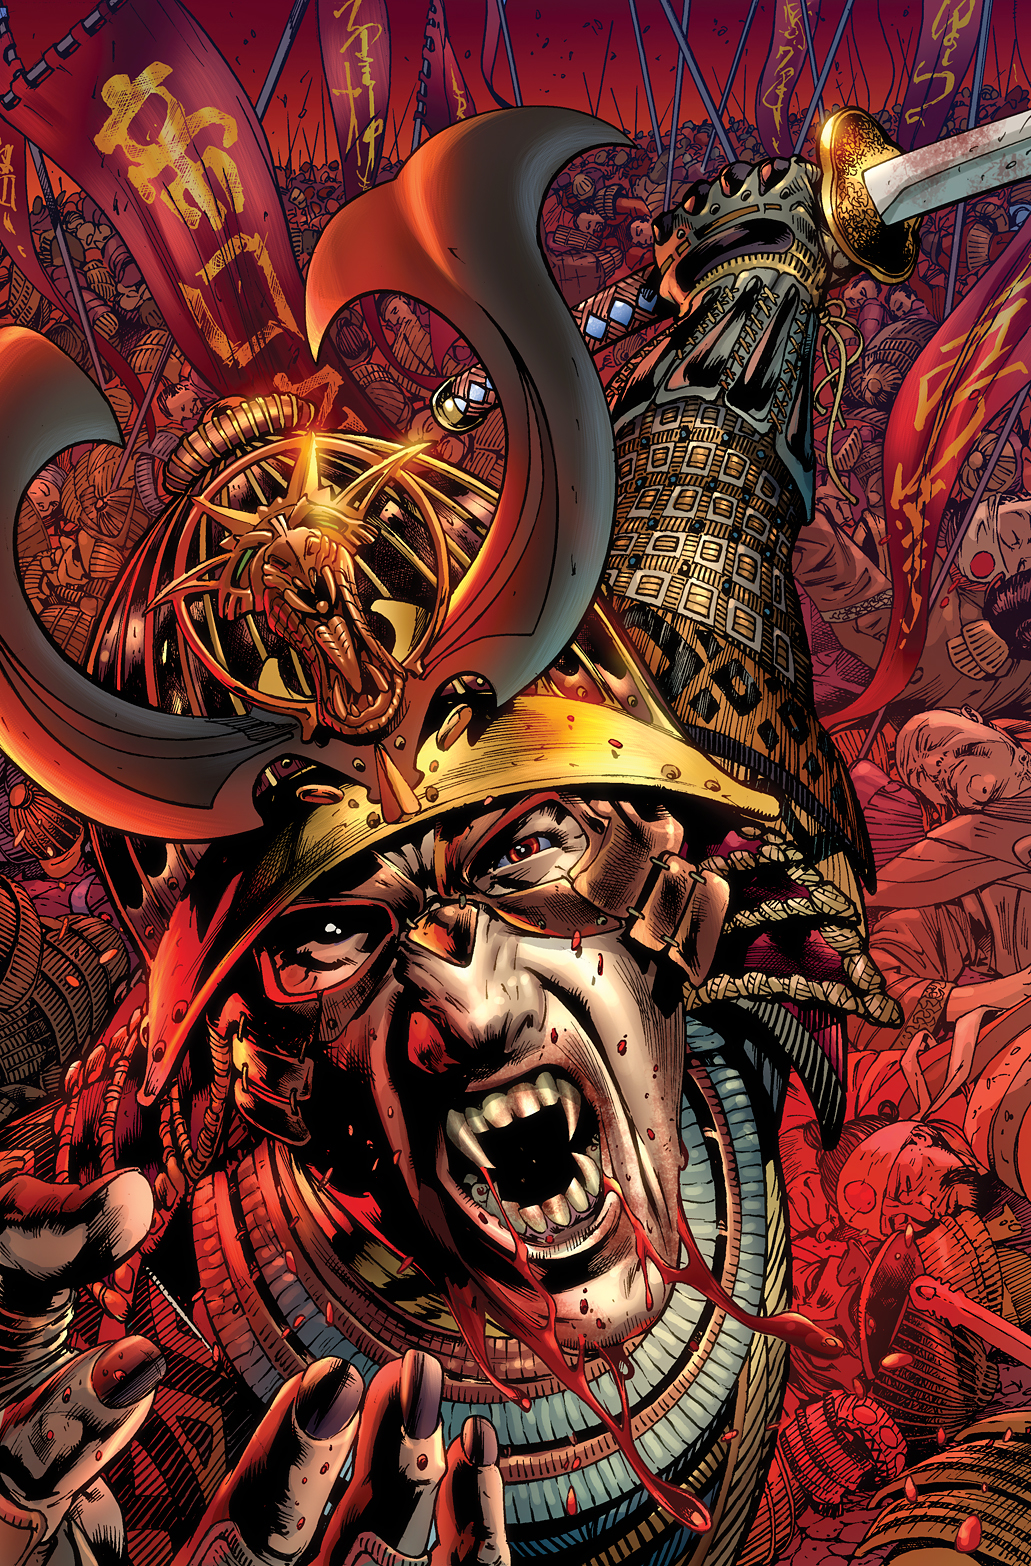 TOMB OF DRACULA PRESENTS THRONE OF BLOOD #1